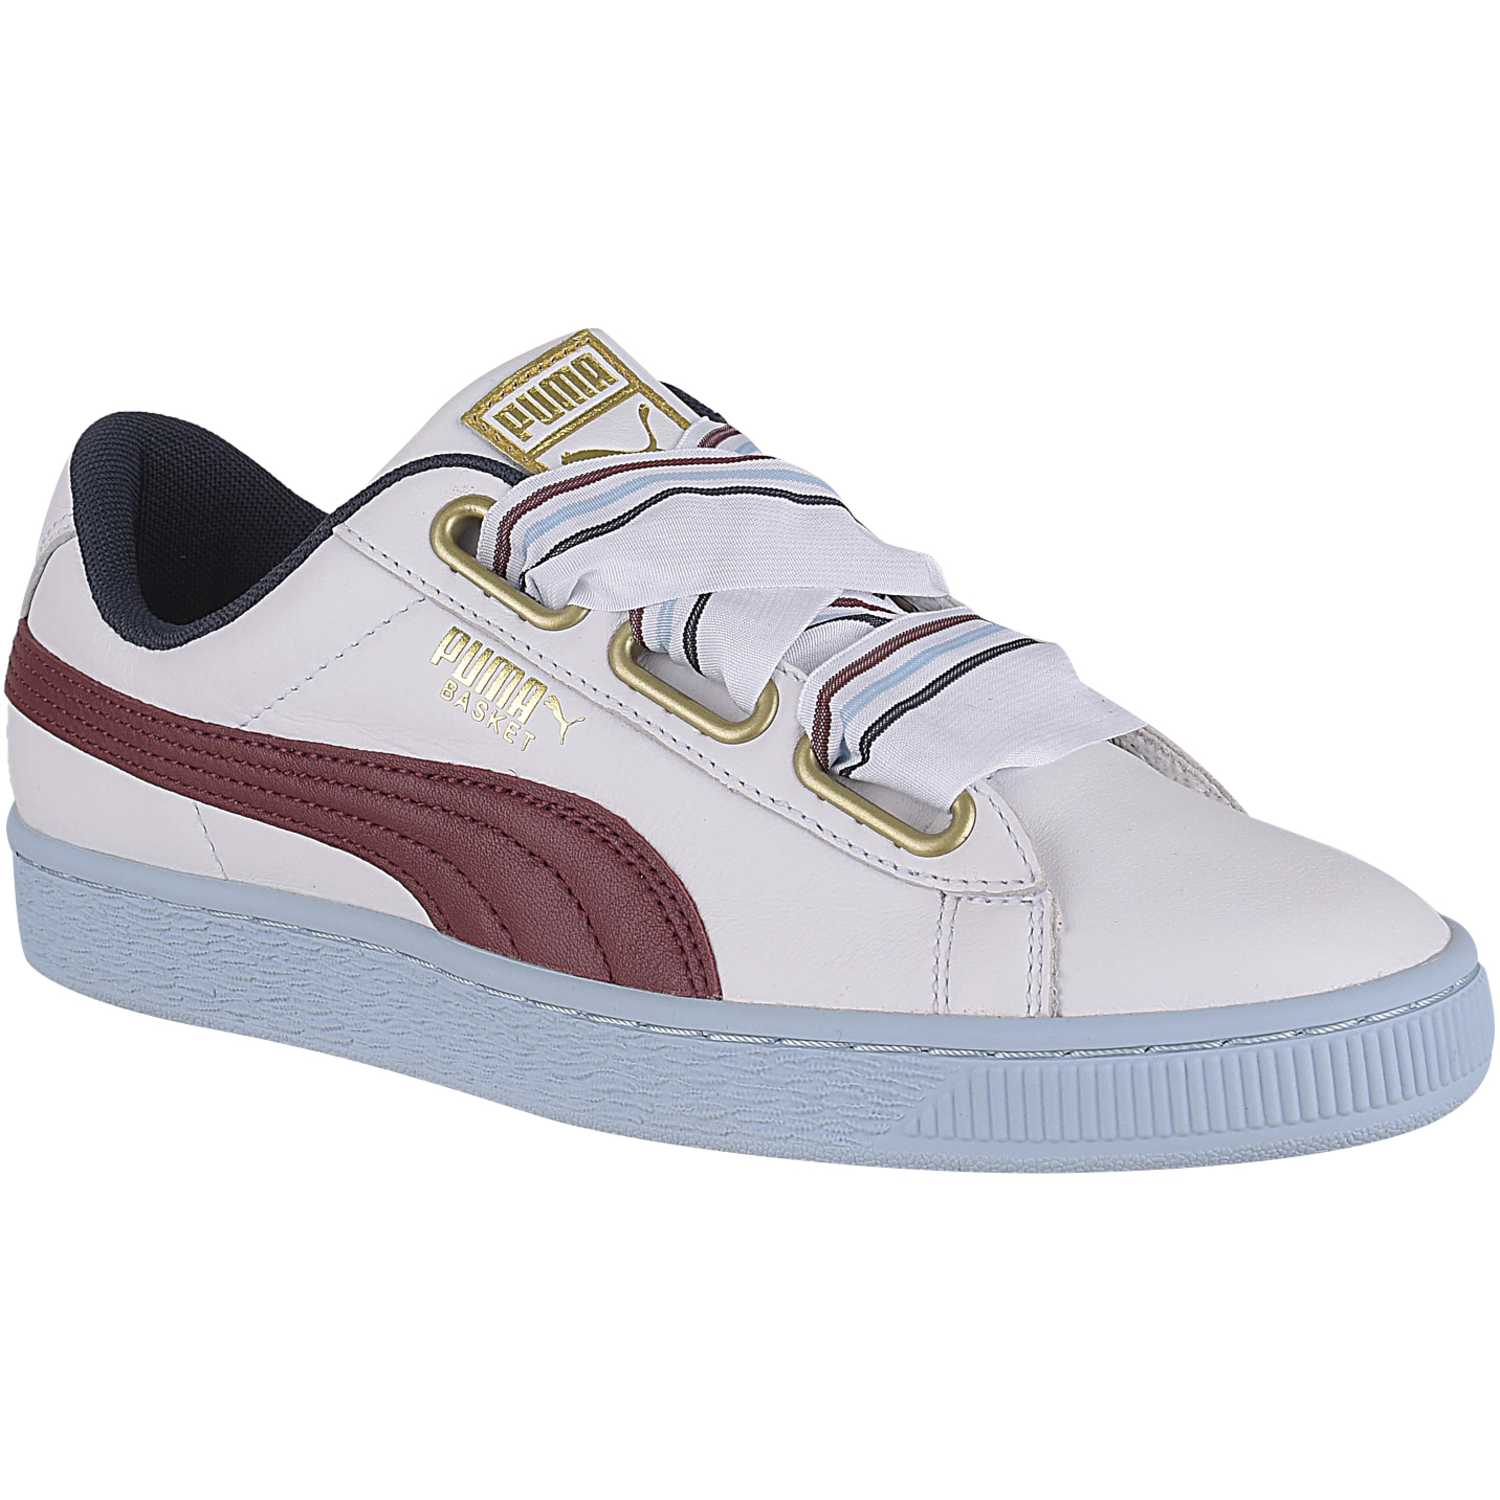 sports shoes f4566 f1b99 Cuña de Mujer Puma Blanco / celeste basket heart new school ...